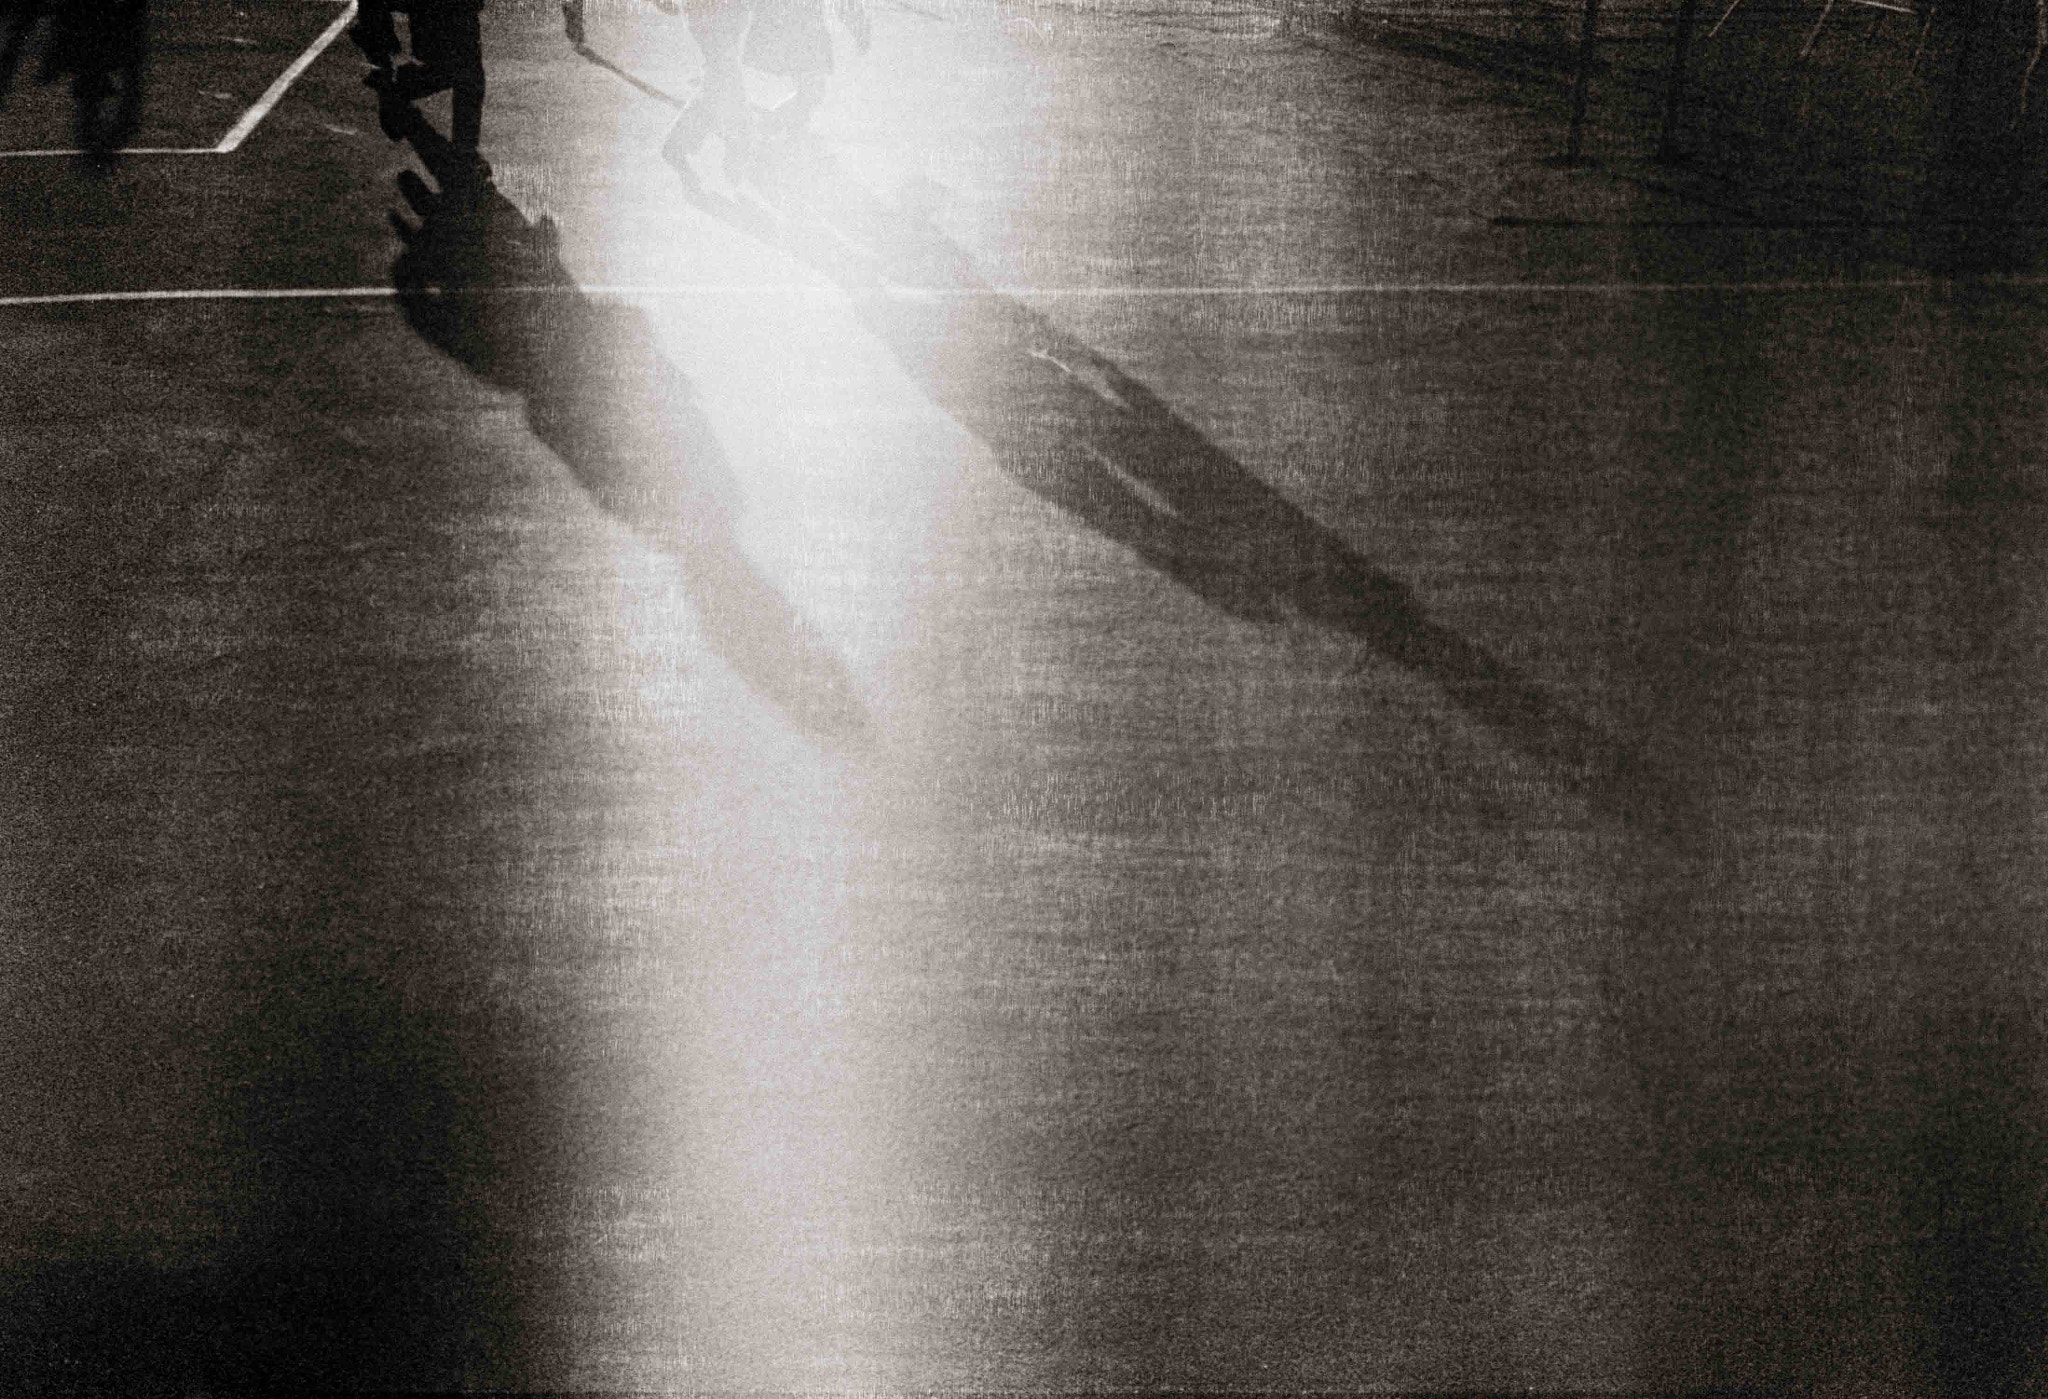 Photograph shadows and light leaks 2 by Ben Spurgeon on 500px